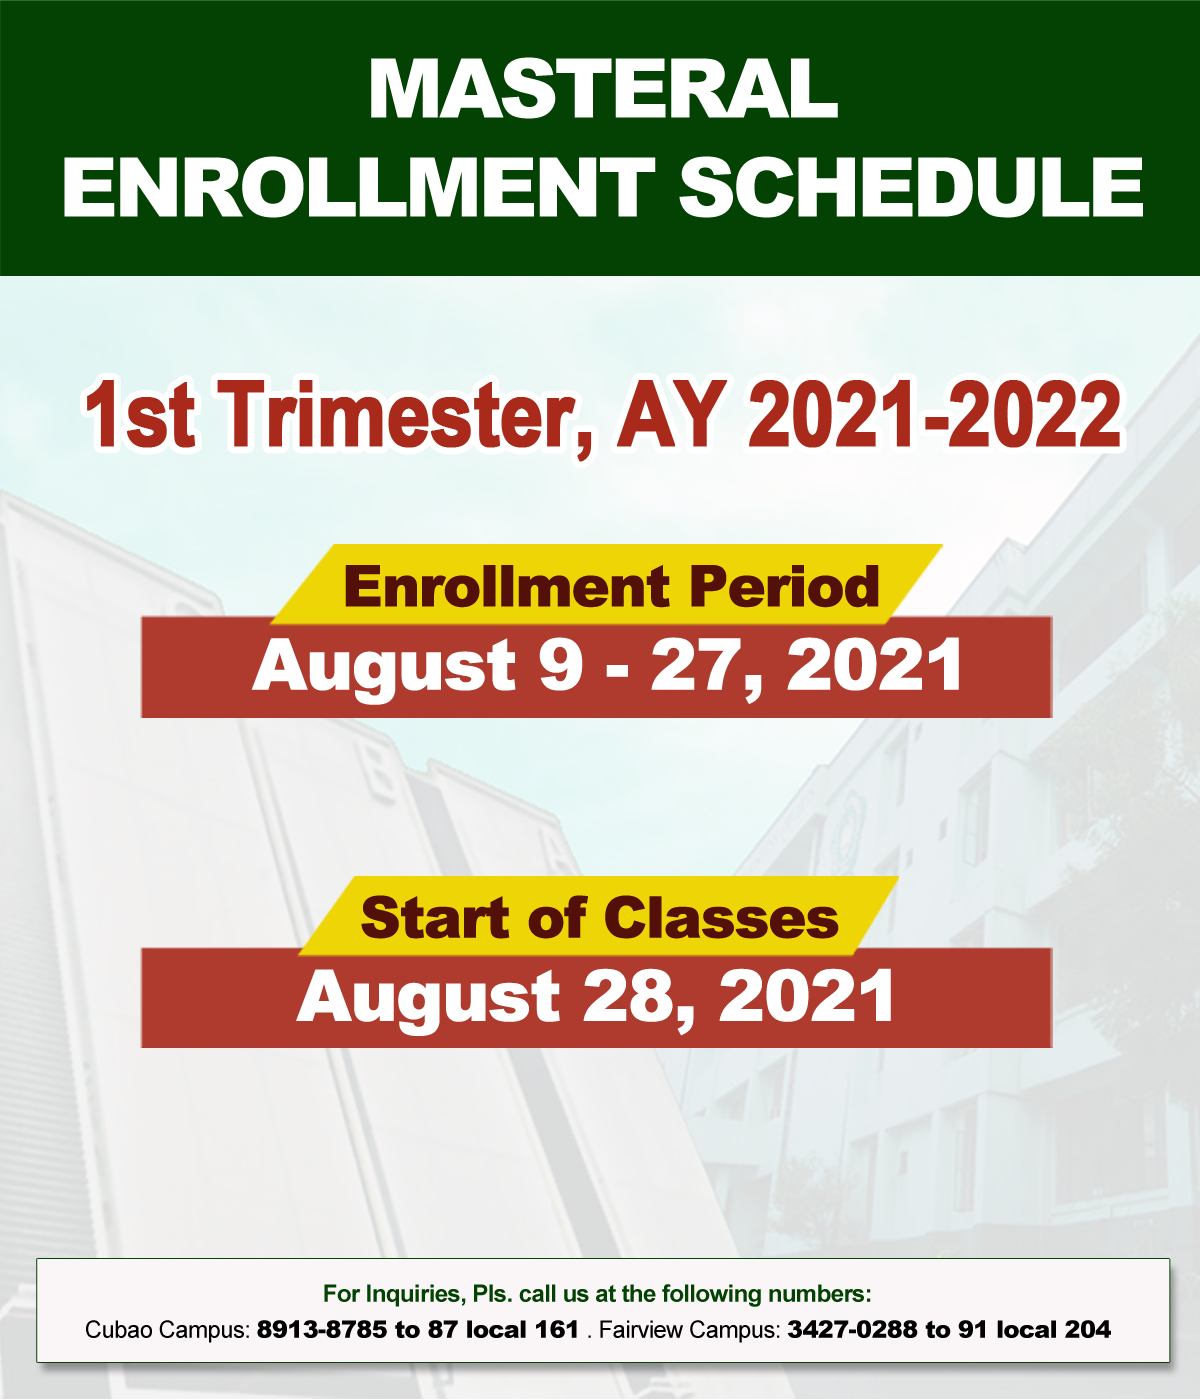 NCBA MASTERAL Enrollment Schedule 1st Trimester, AY 2021-2022